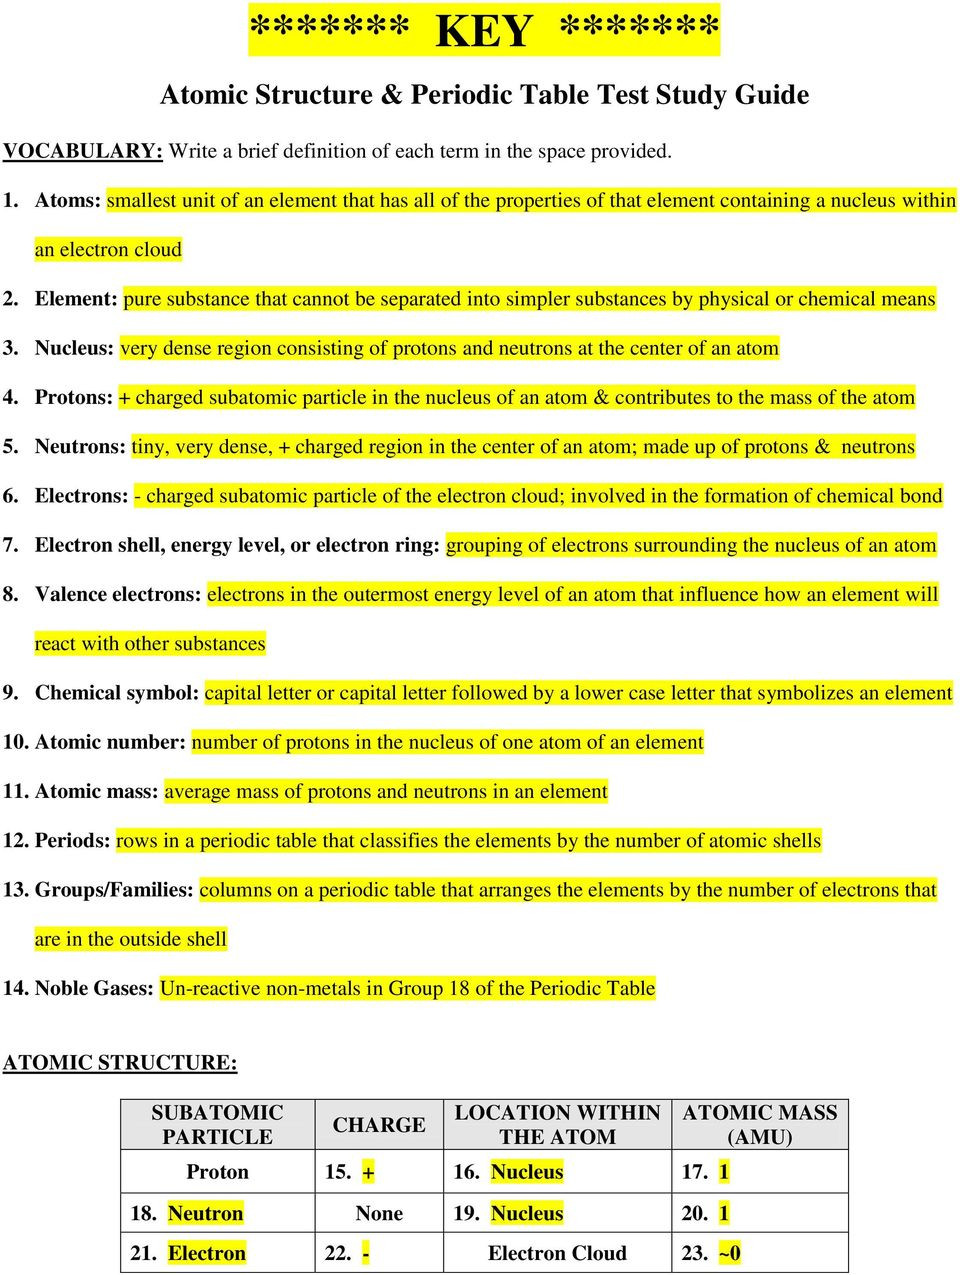 Atomic Structure Worksheet Answer Key Key atomic Structure & Periodic Table Test Study